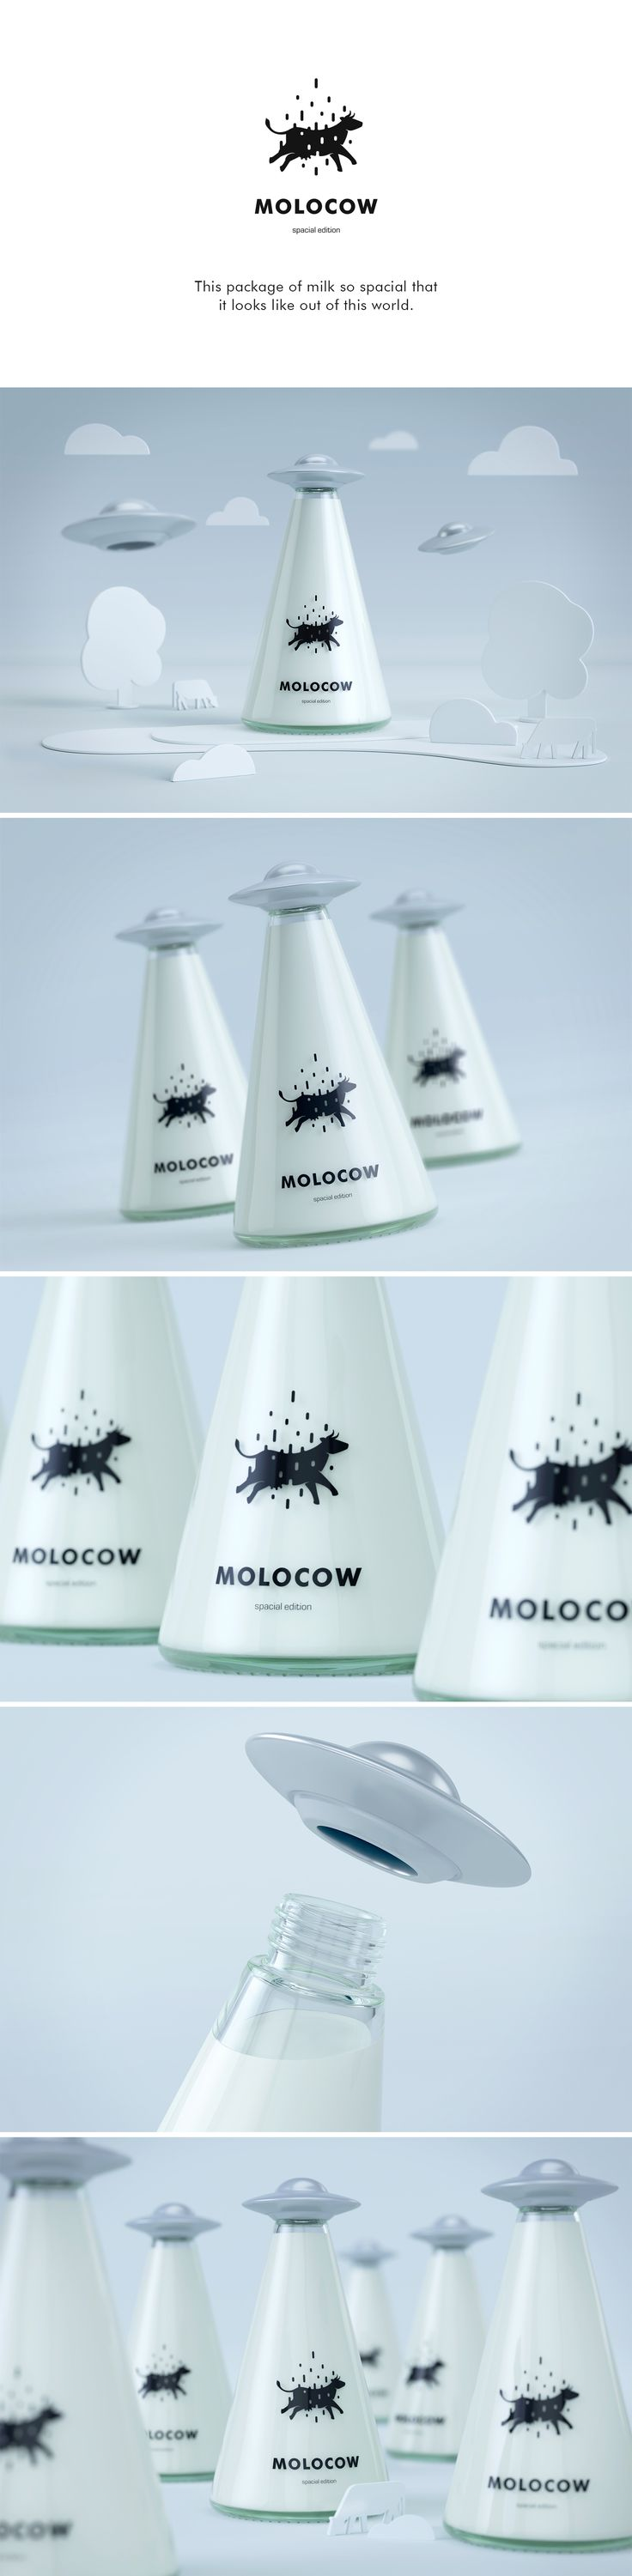 Molocow is a fun concept package for milk. We reimagined milk bottle and package to appeal for kids. We created fun way to pack milk in an out of this world fashion.